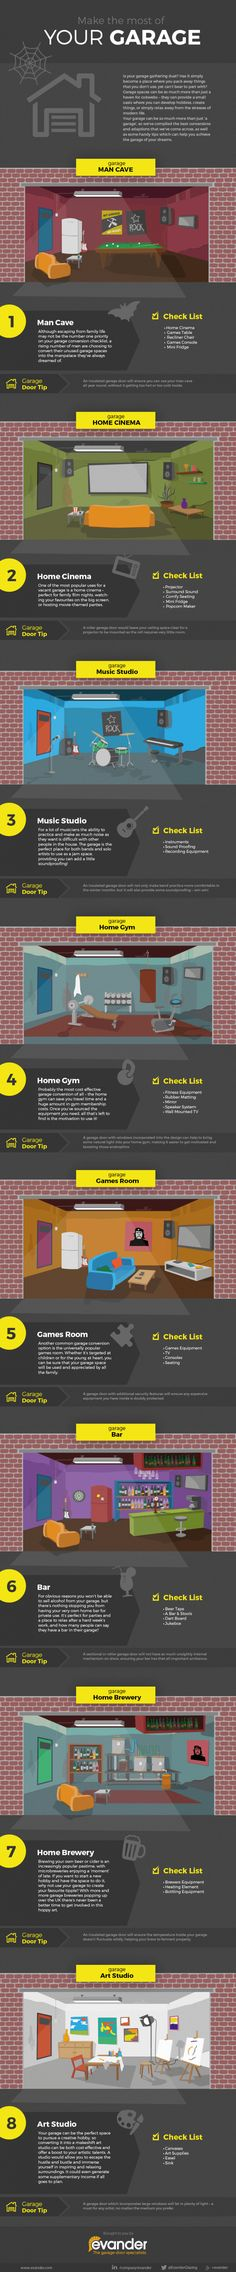 Turn your garage into the ultimate man cave | 10 Man Cave Ideas For Real Men http://diyready.com/man-cave-ideas-for-real-men/